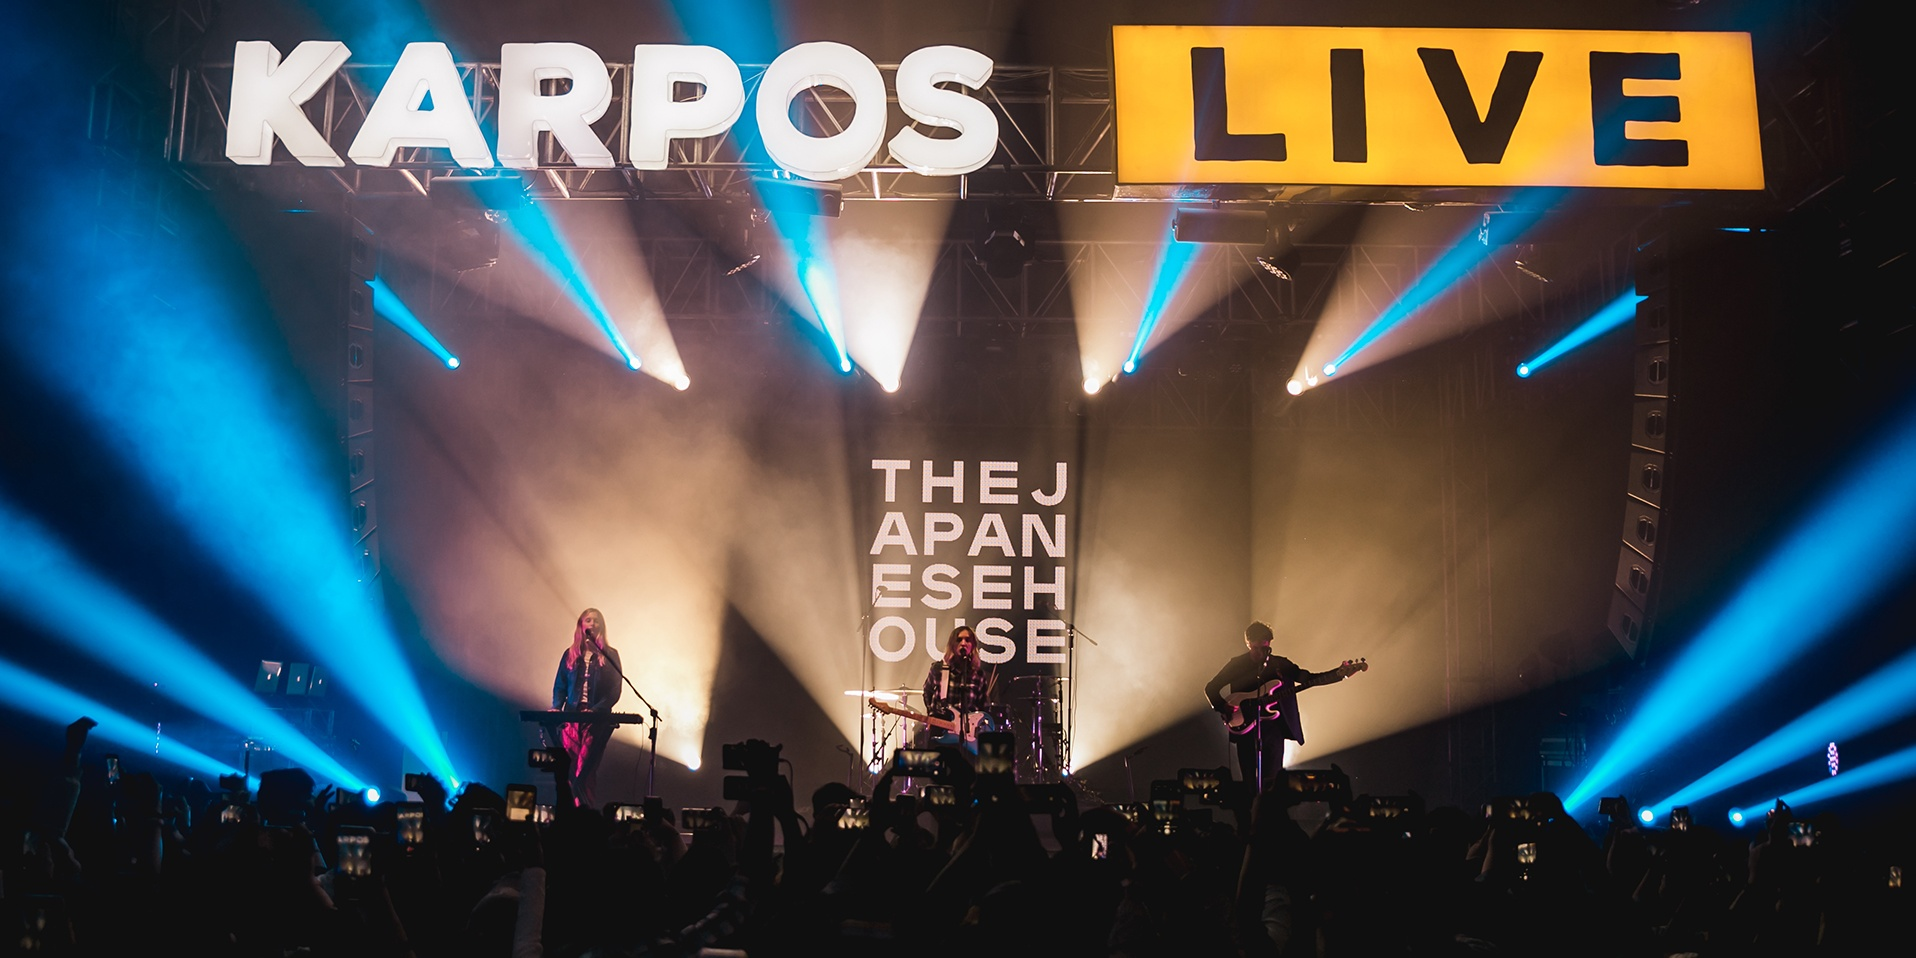 Munimuni and The Japanese House deliver breathtaking performances at Karpos Live Mix 7 – photo gallery